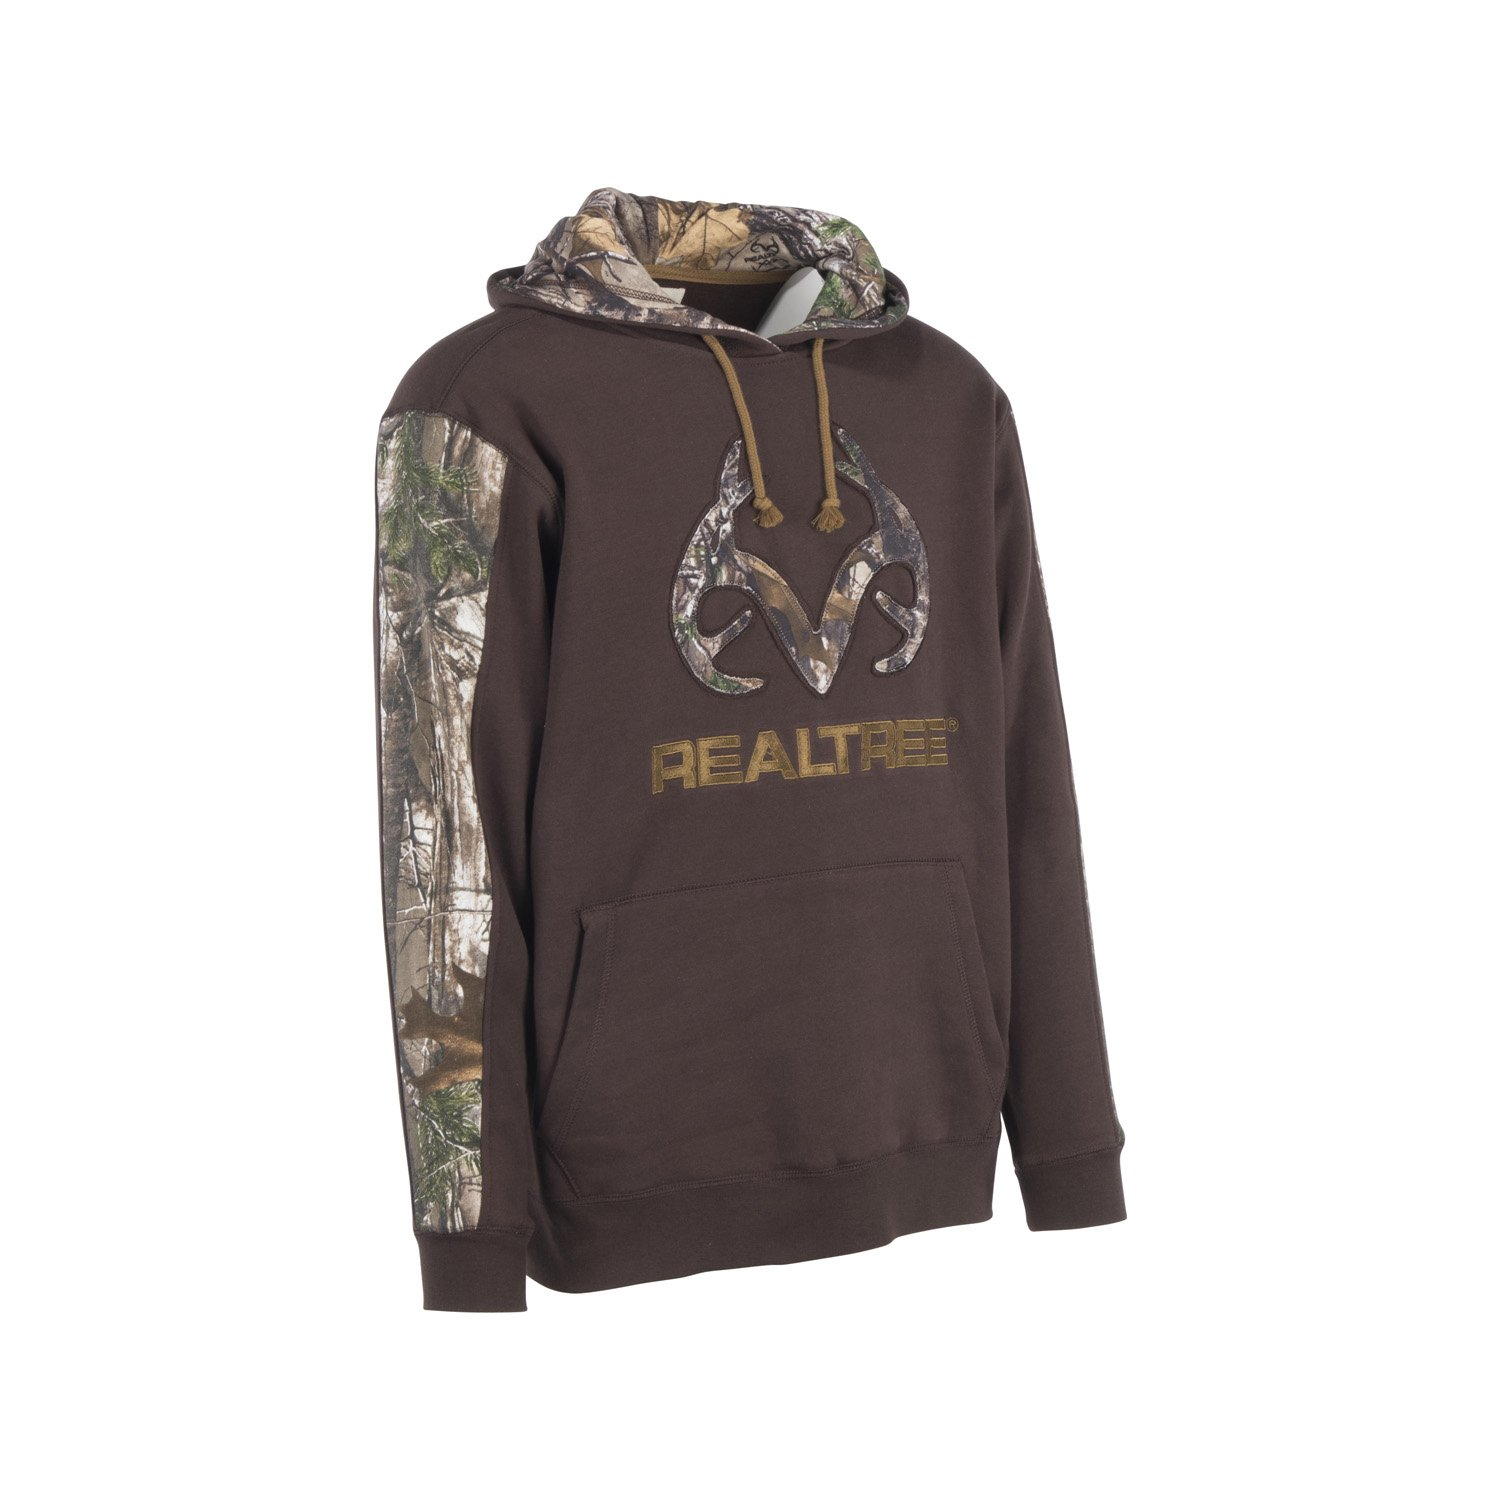 9160335486ea1 Realtree Xtra accents on sleeves and inside hood. Kangaroo handwarmer  pocket. Ribbed knit cuffs and waist. Attached drawstring hood